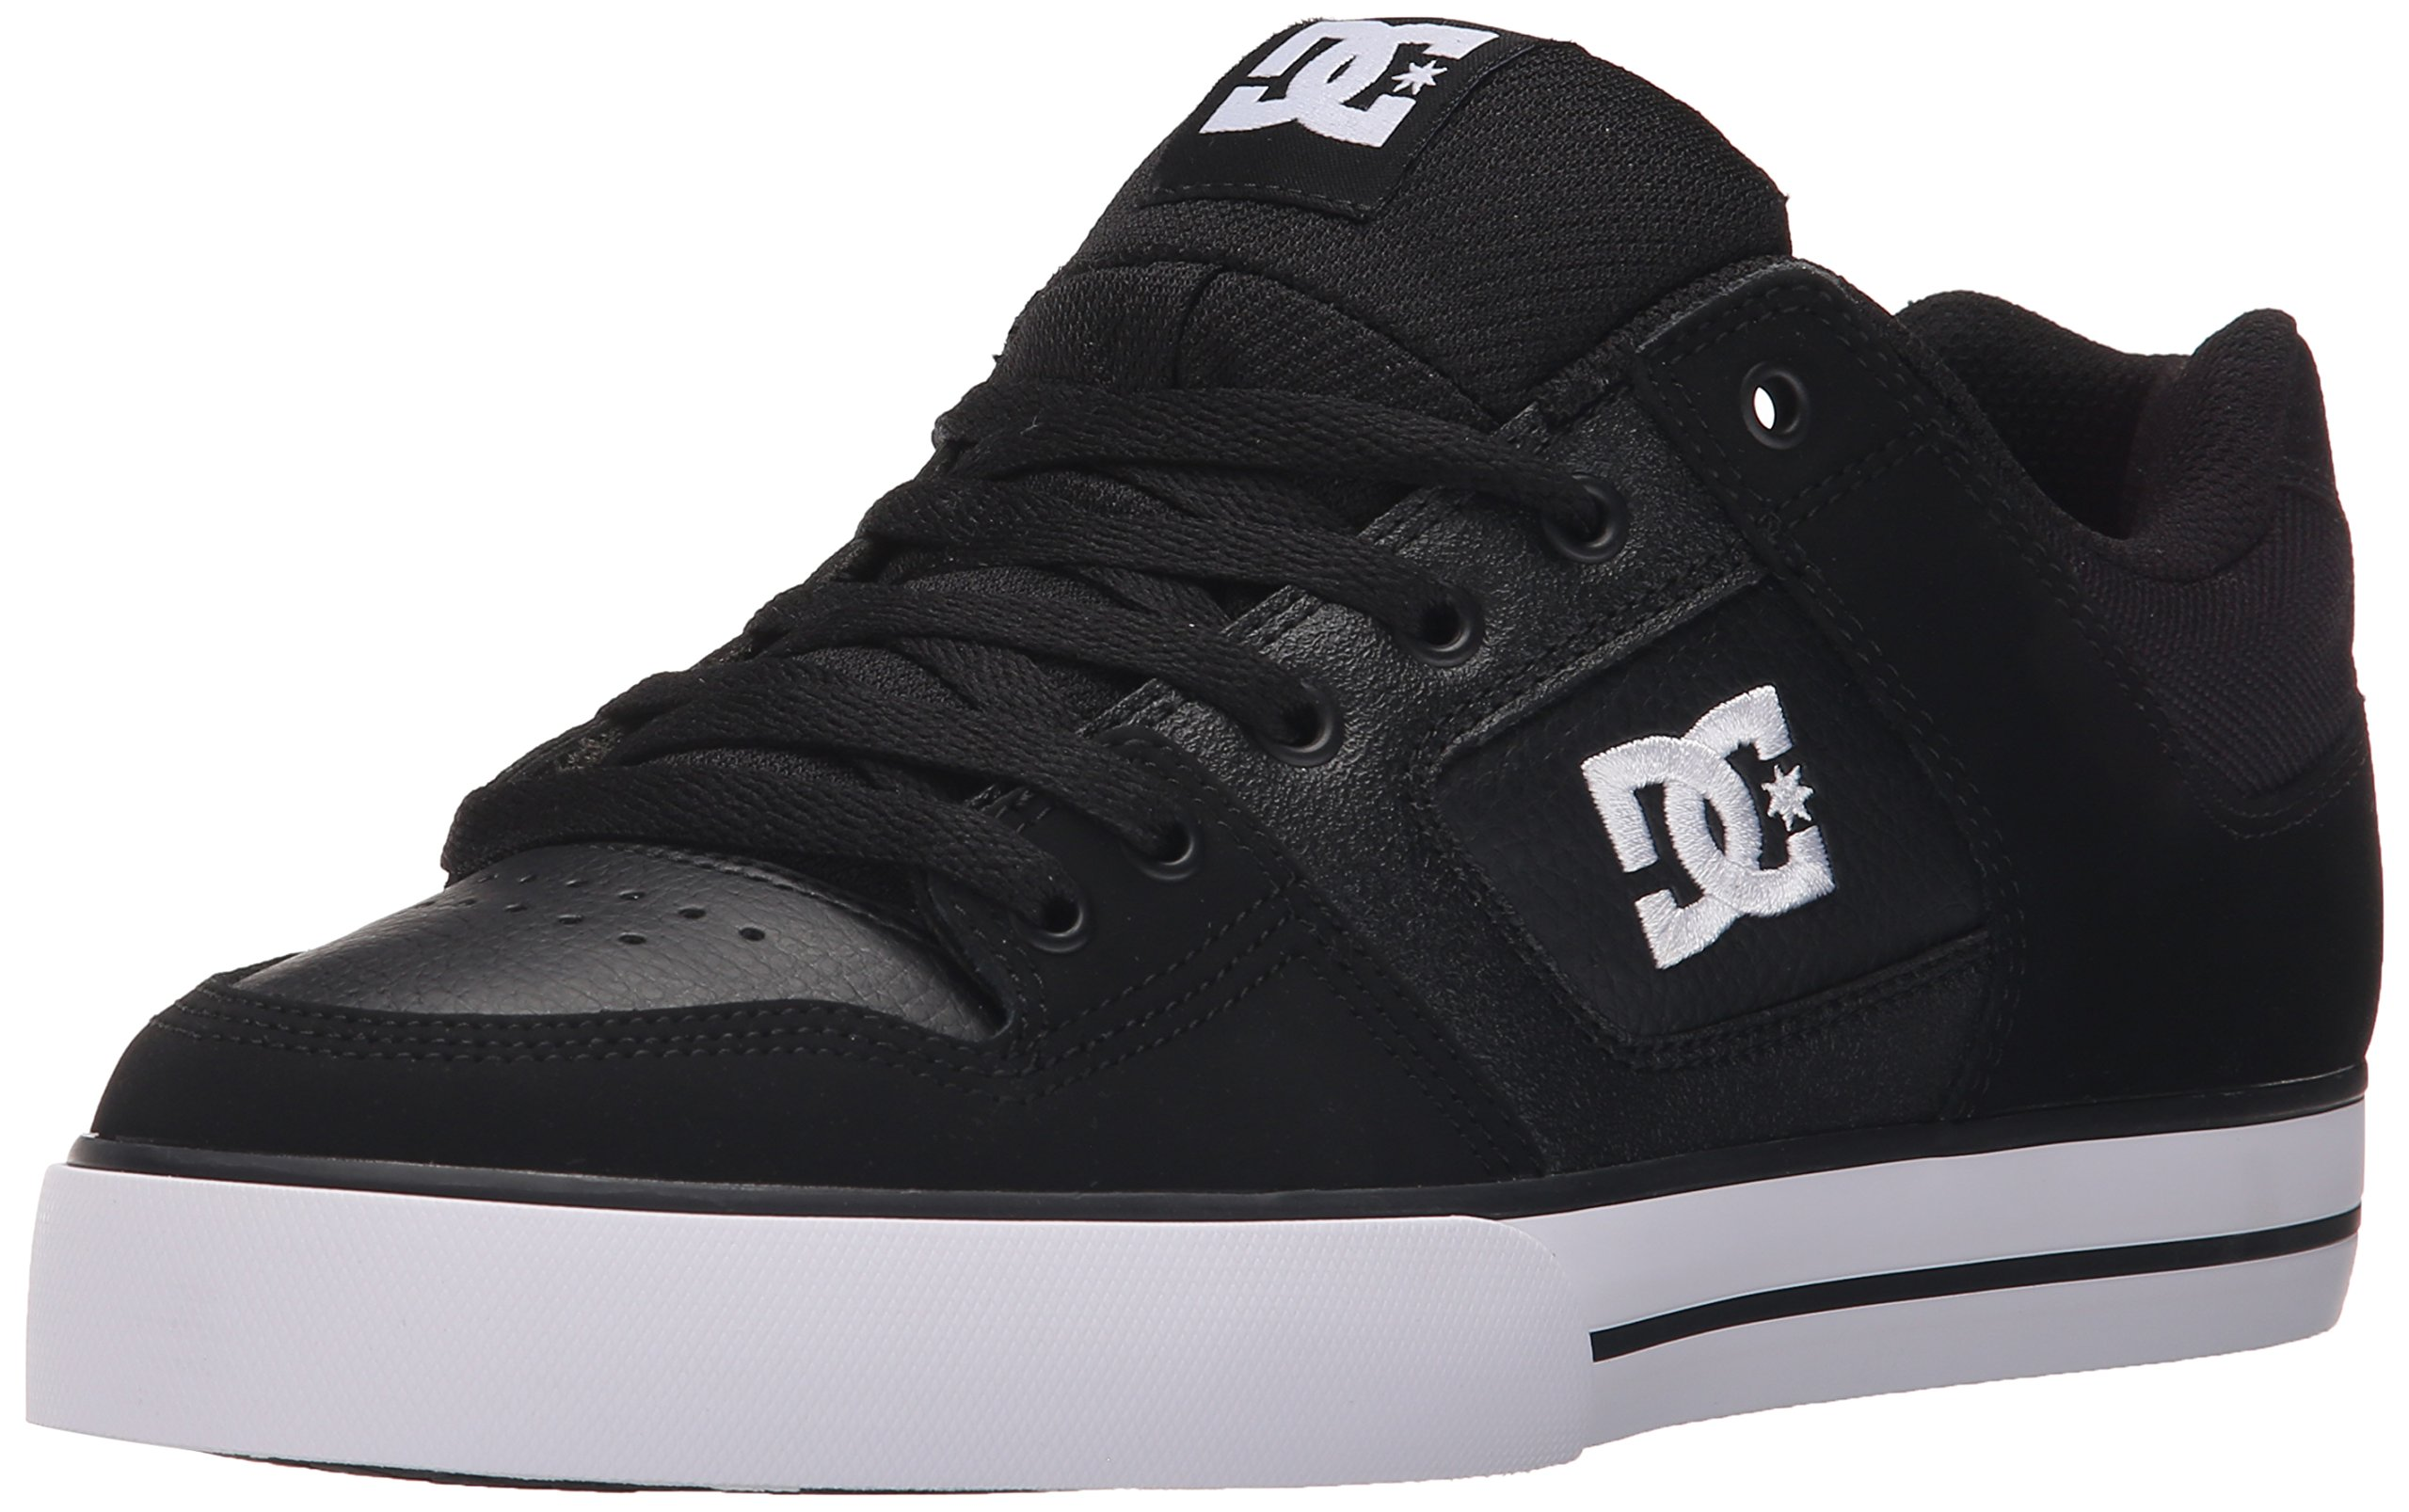 DC Men's Pure Shoe, Black/Black/White, 10 D D US by DC